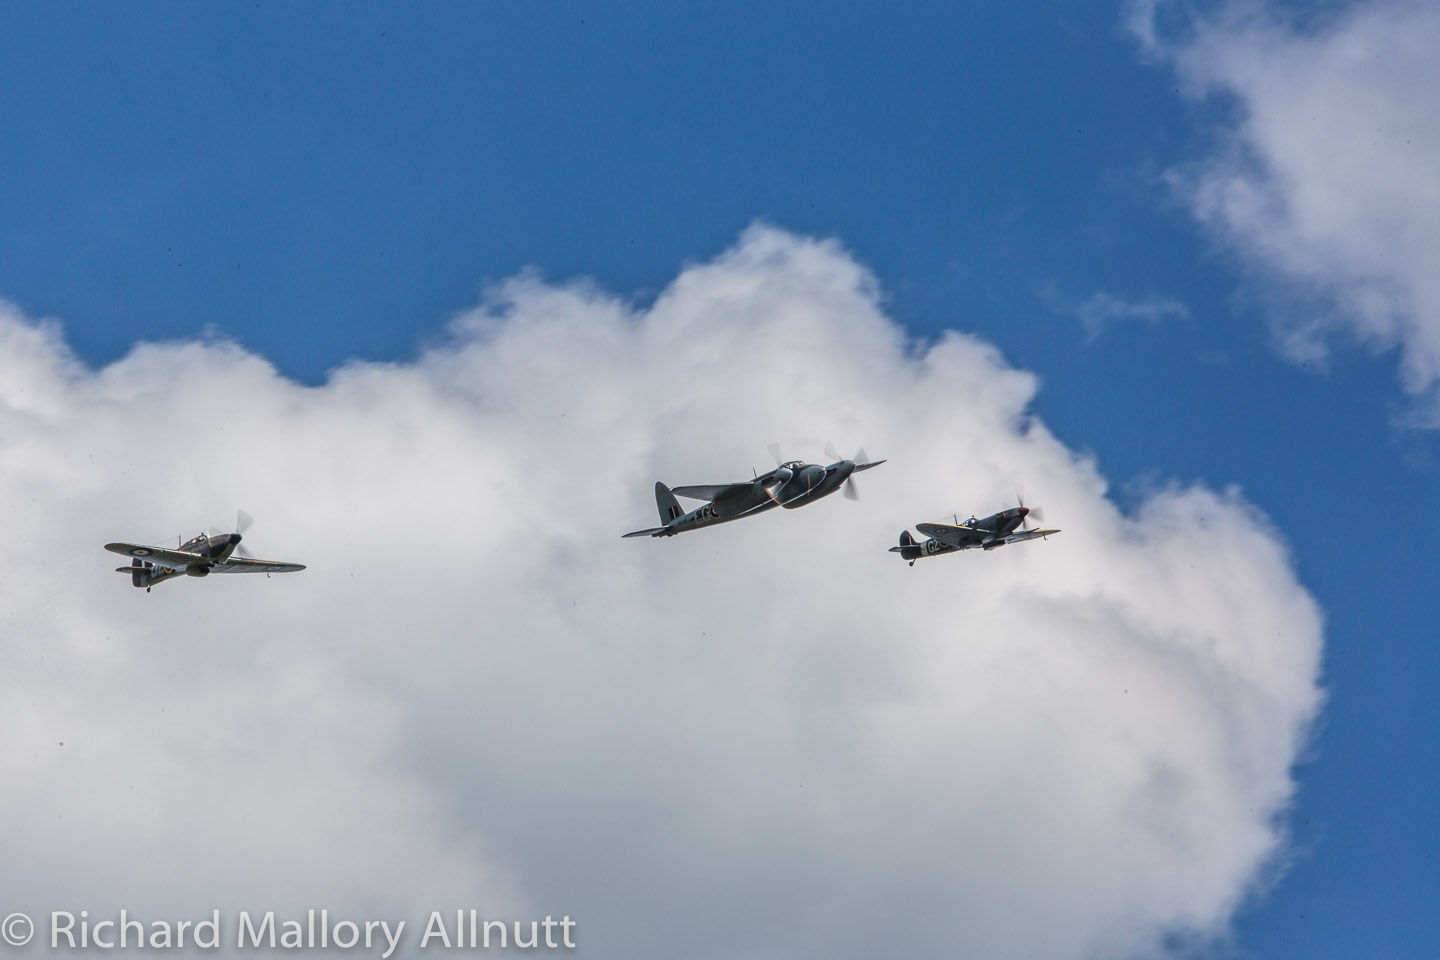 _C8A0497 - Richard Mallory Allnutt photo - Warbirds Over the Beach - Military Aviation Museum - Pungo, VA - May 17, 2014